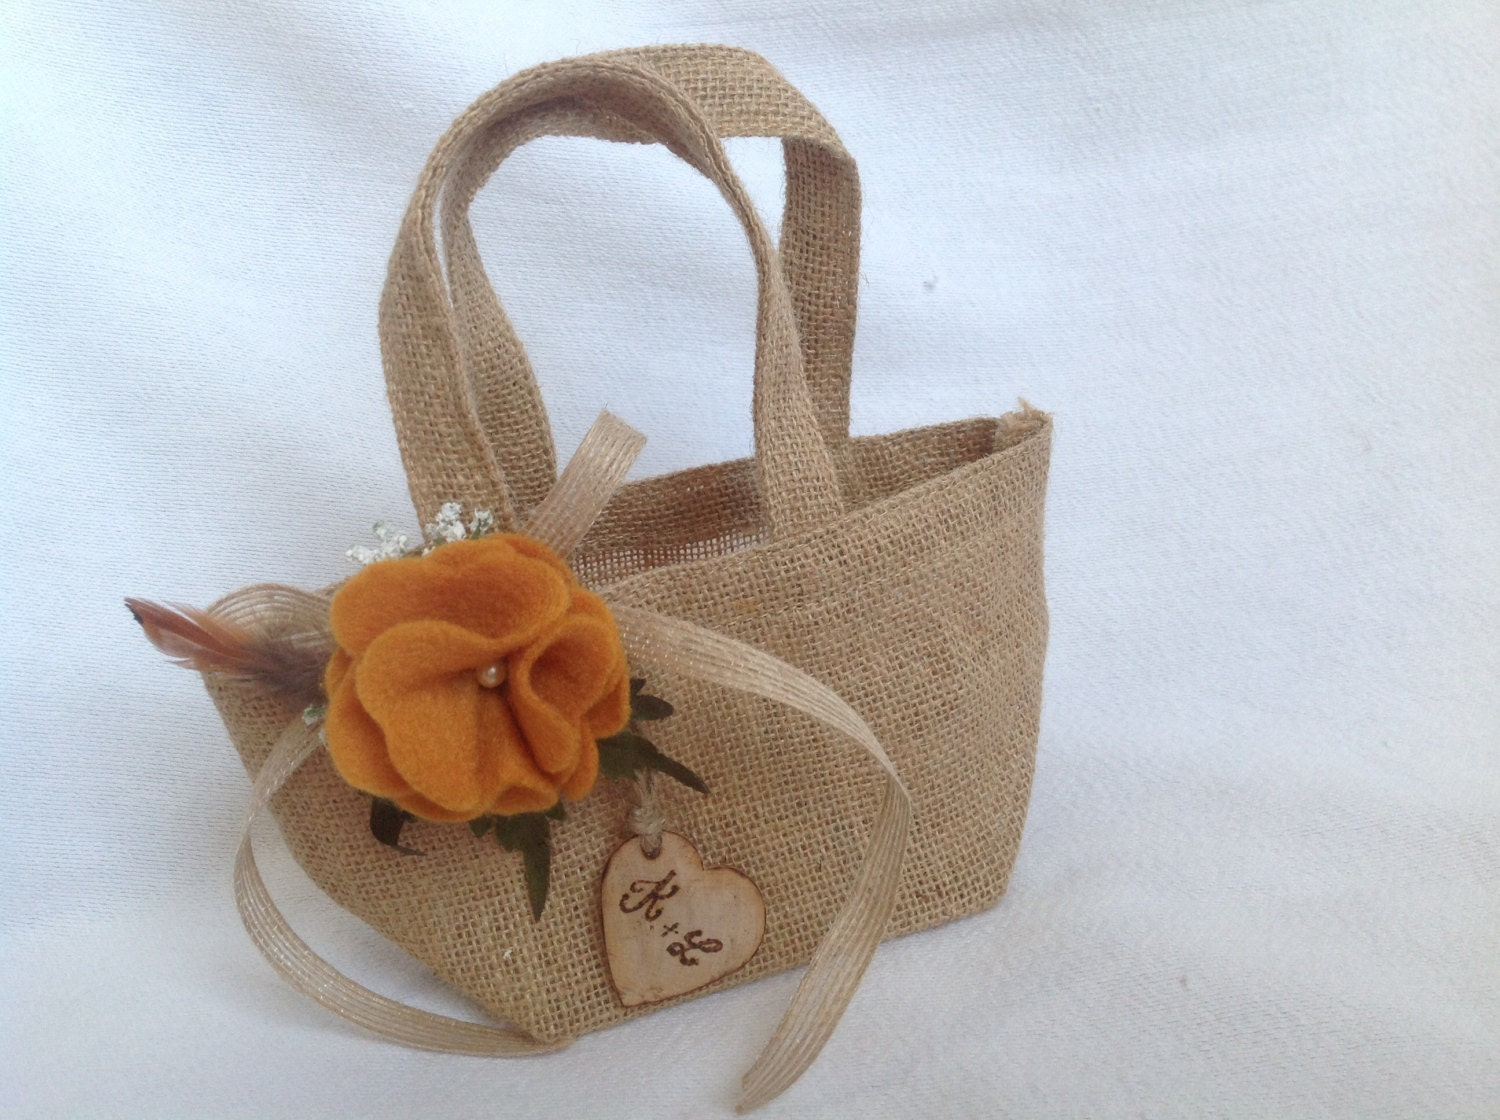 Flower Girl Baskets Burlap : Rustic burlap flower girl basket